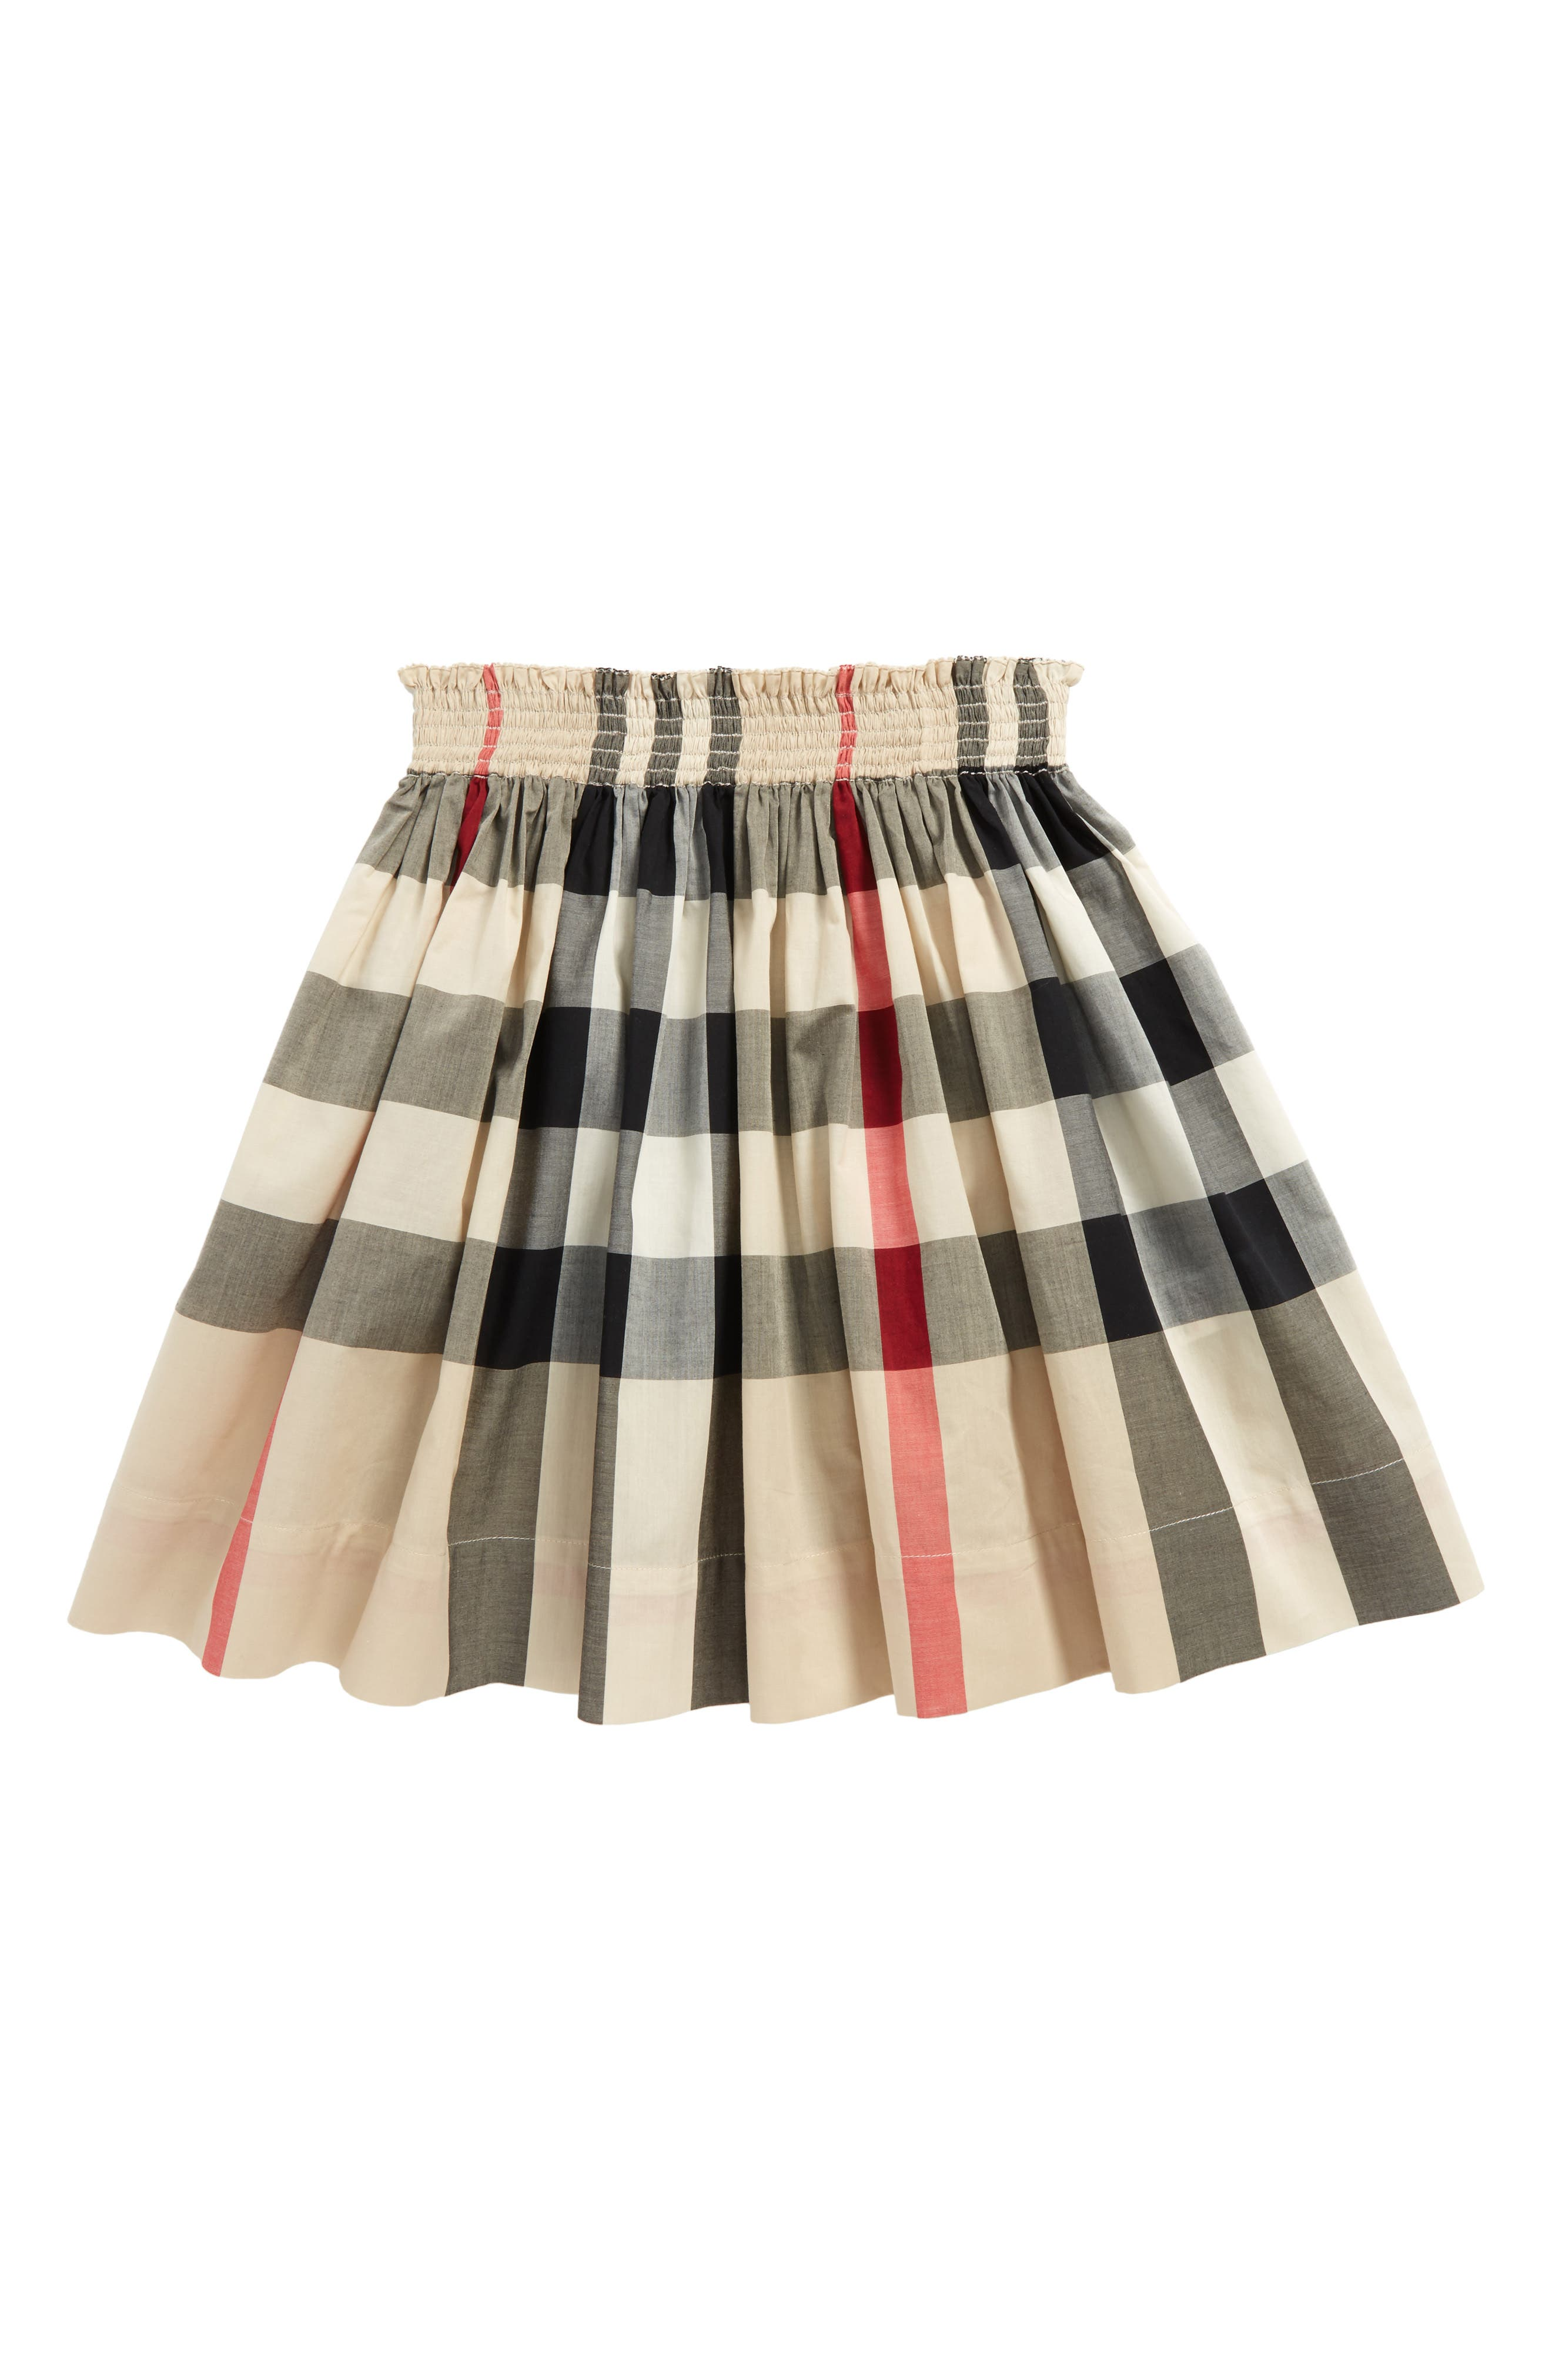 Alternate Image 1 Selected - Burberry Hala Check Skirt (Little Girls & Big Girls)